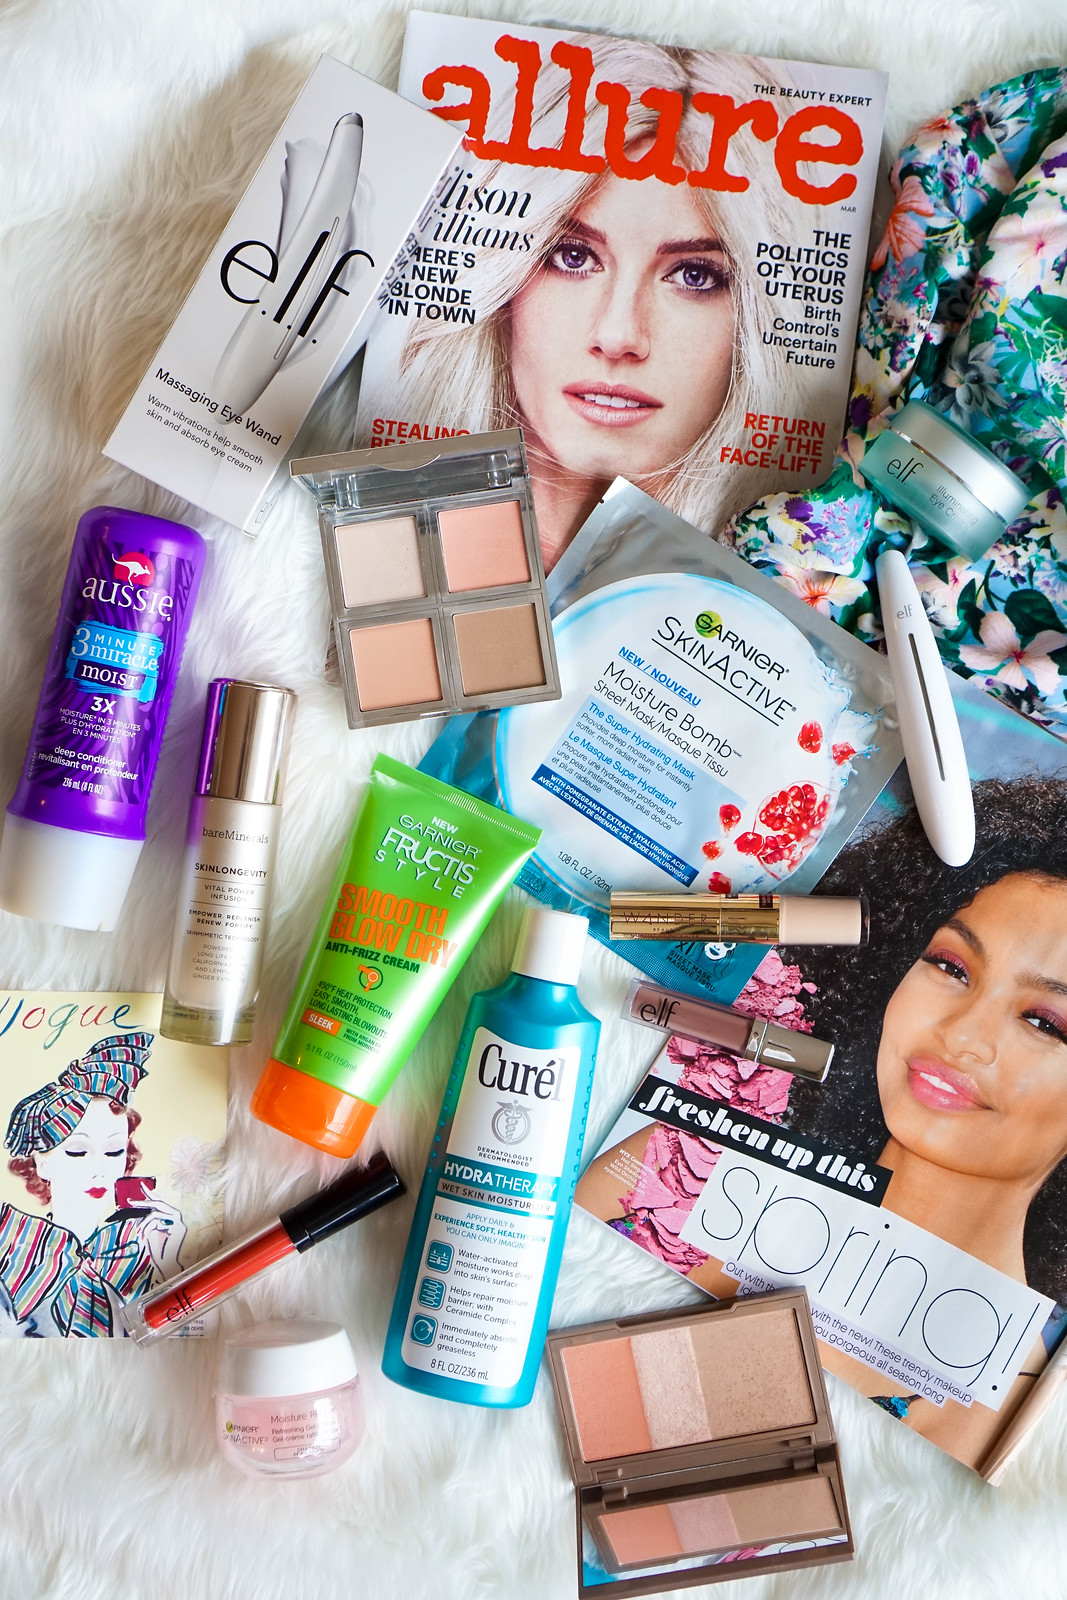 Living After Midnite March Beauty Essentials